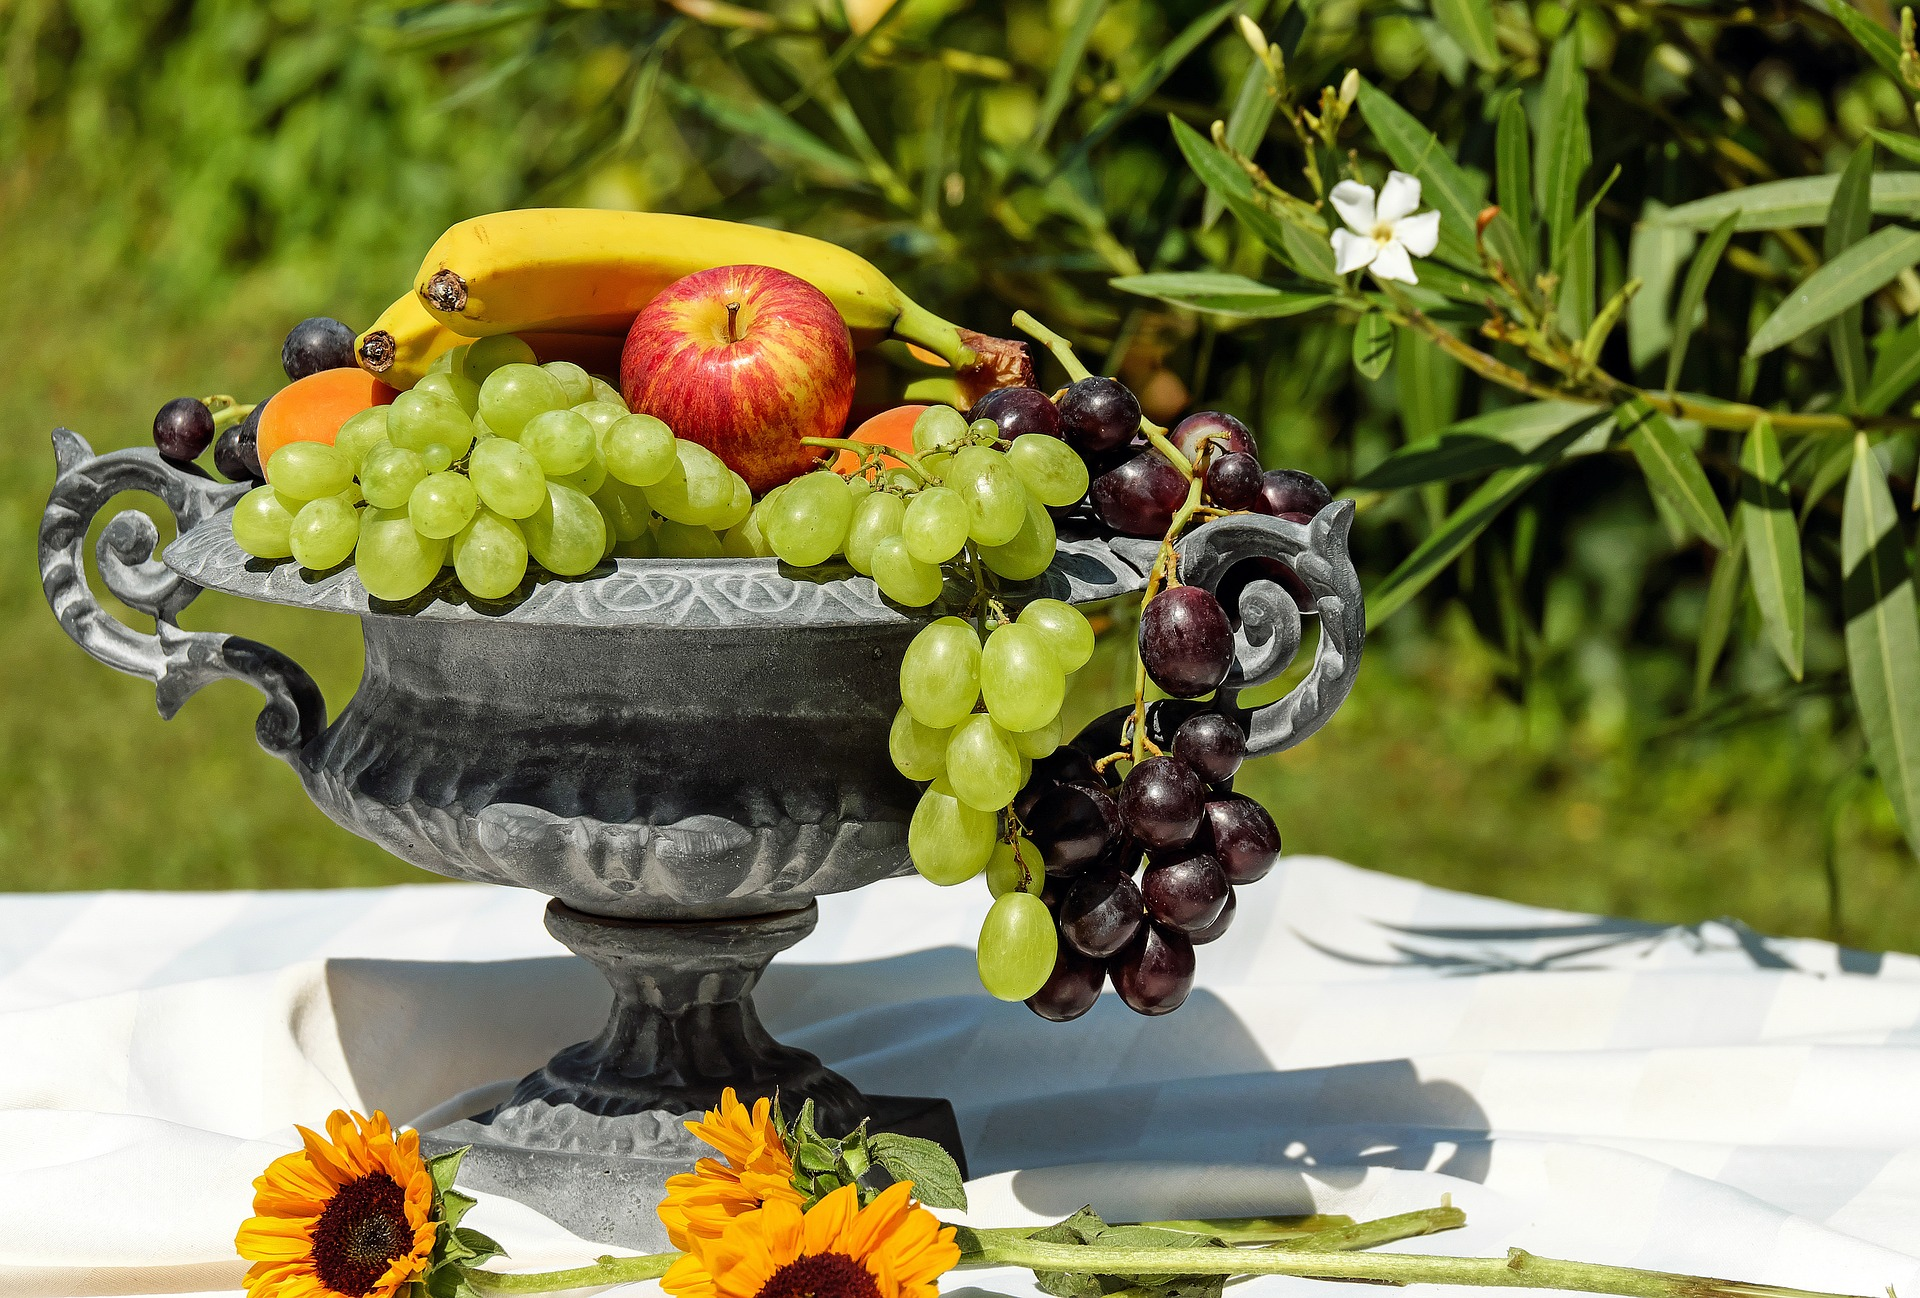 fruit-bowl-1600003_1920